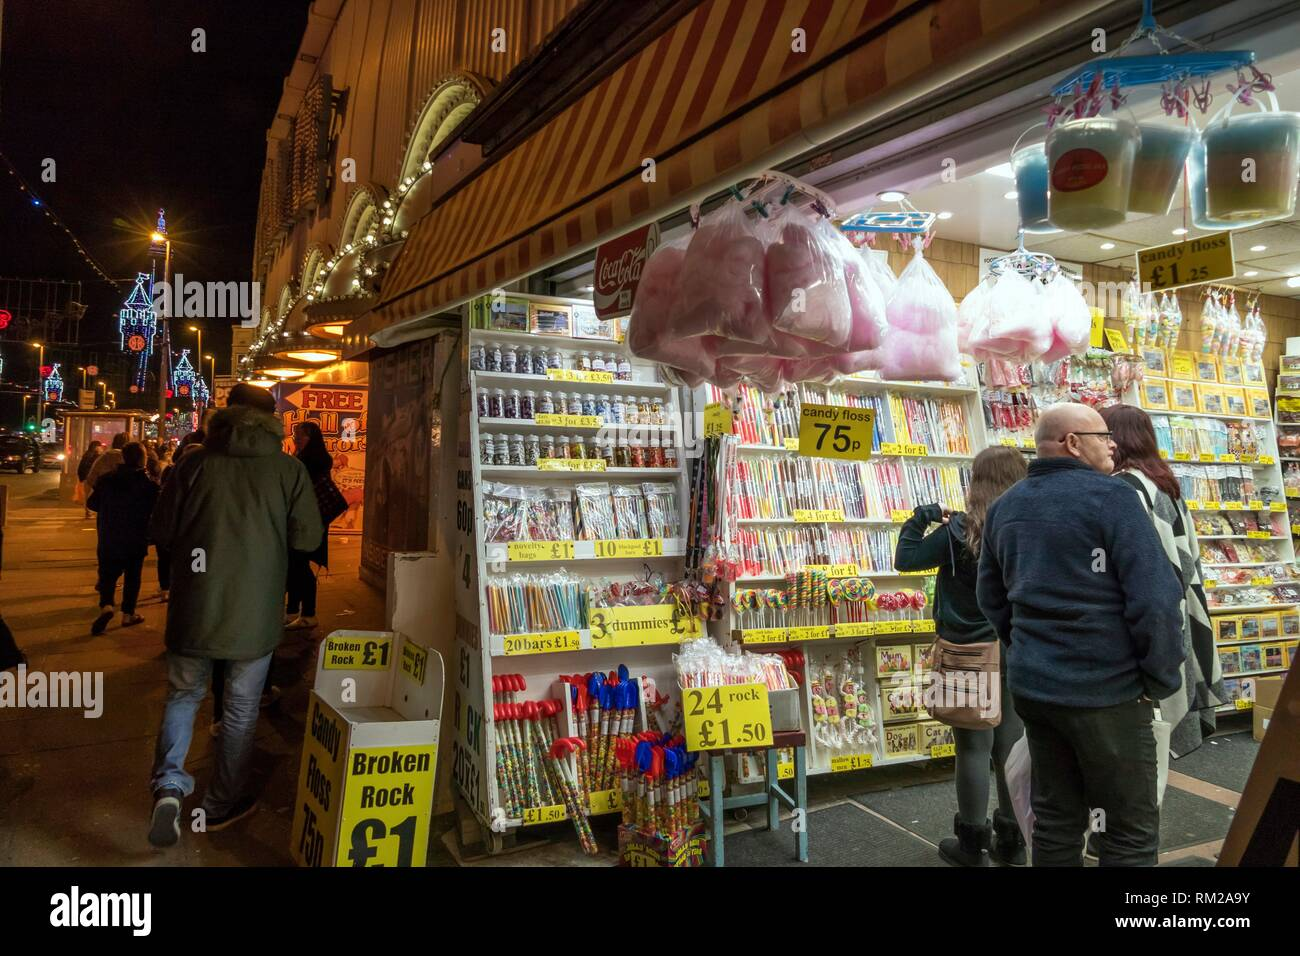 Blackpool rock and candy store with bags of candy floss, sugar lollies and canes by the famous illuminations of Blackpool´s Golden Mile, Blackpool, - Stock Image